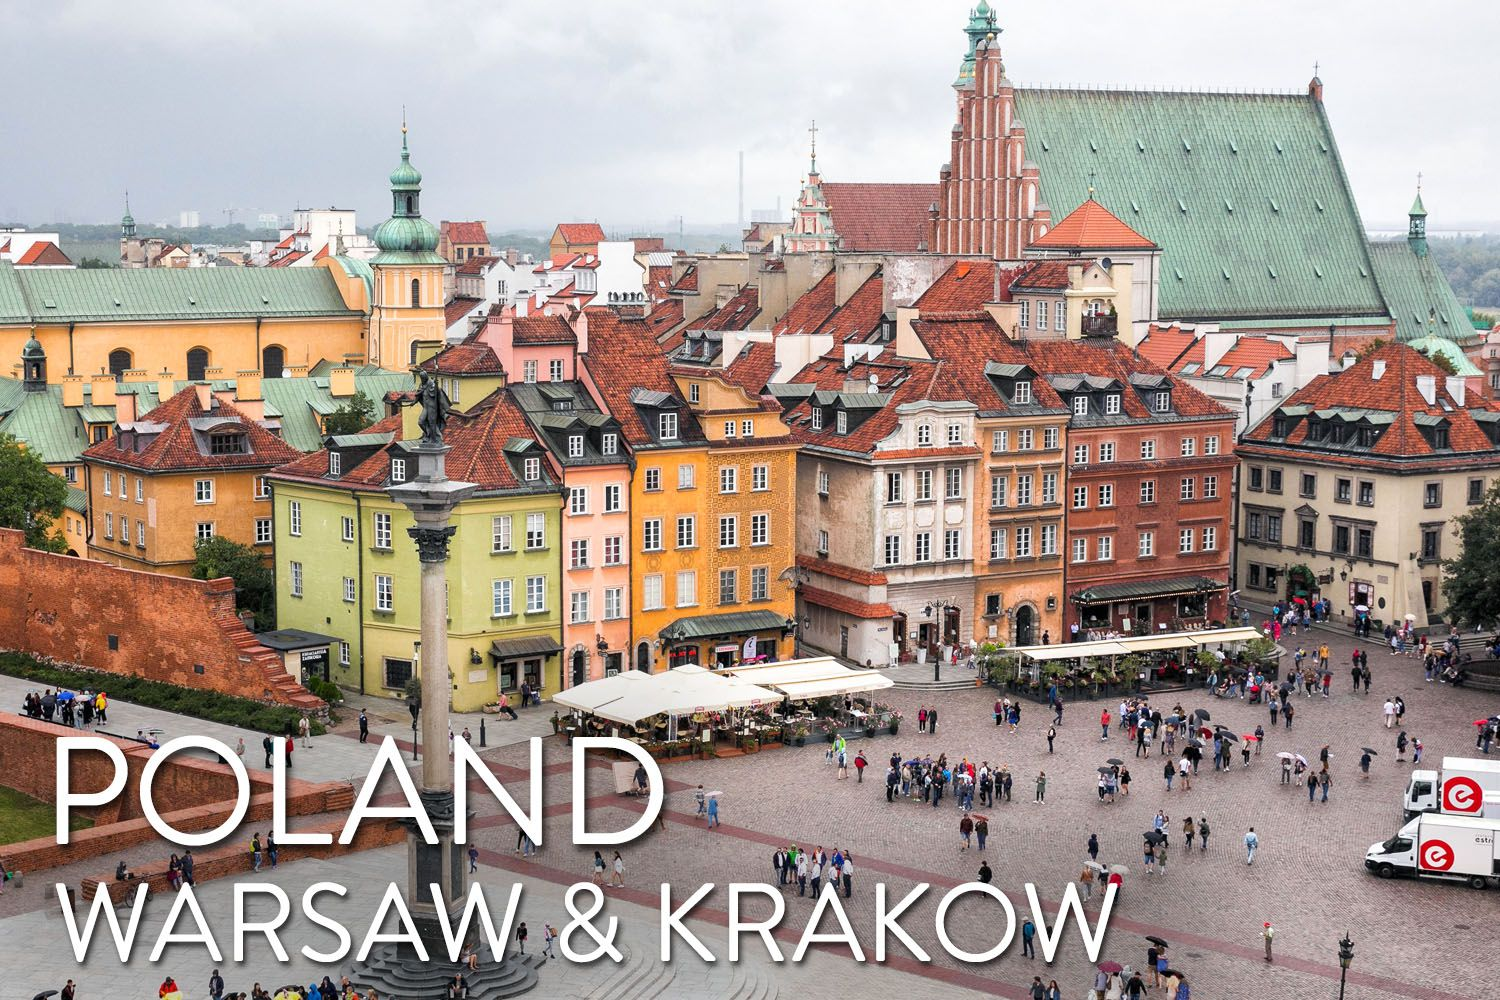 Warsaw and Krakow